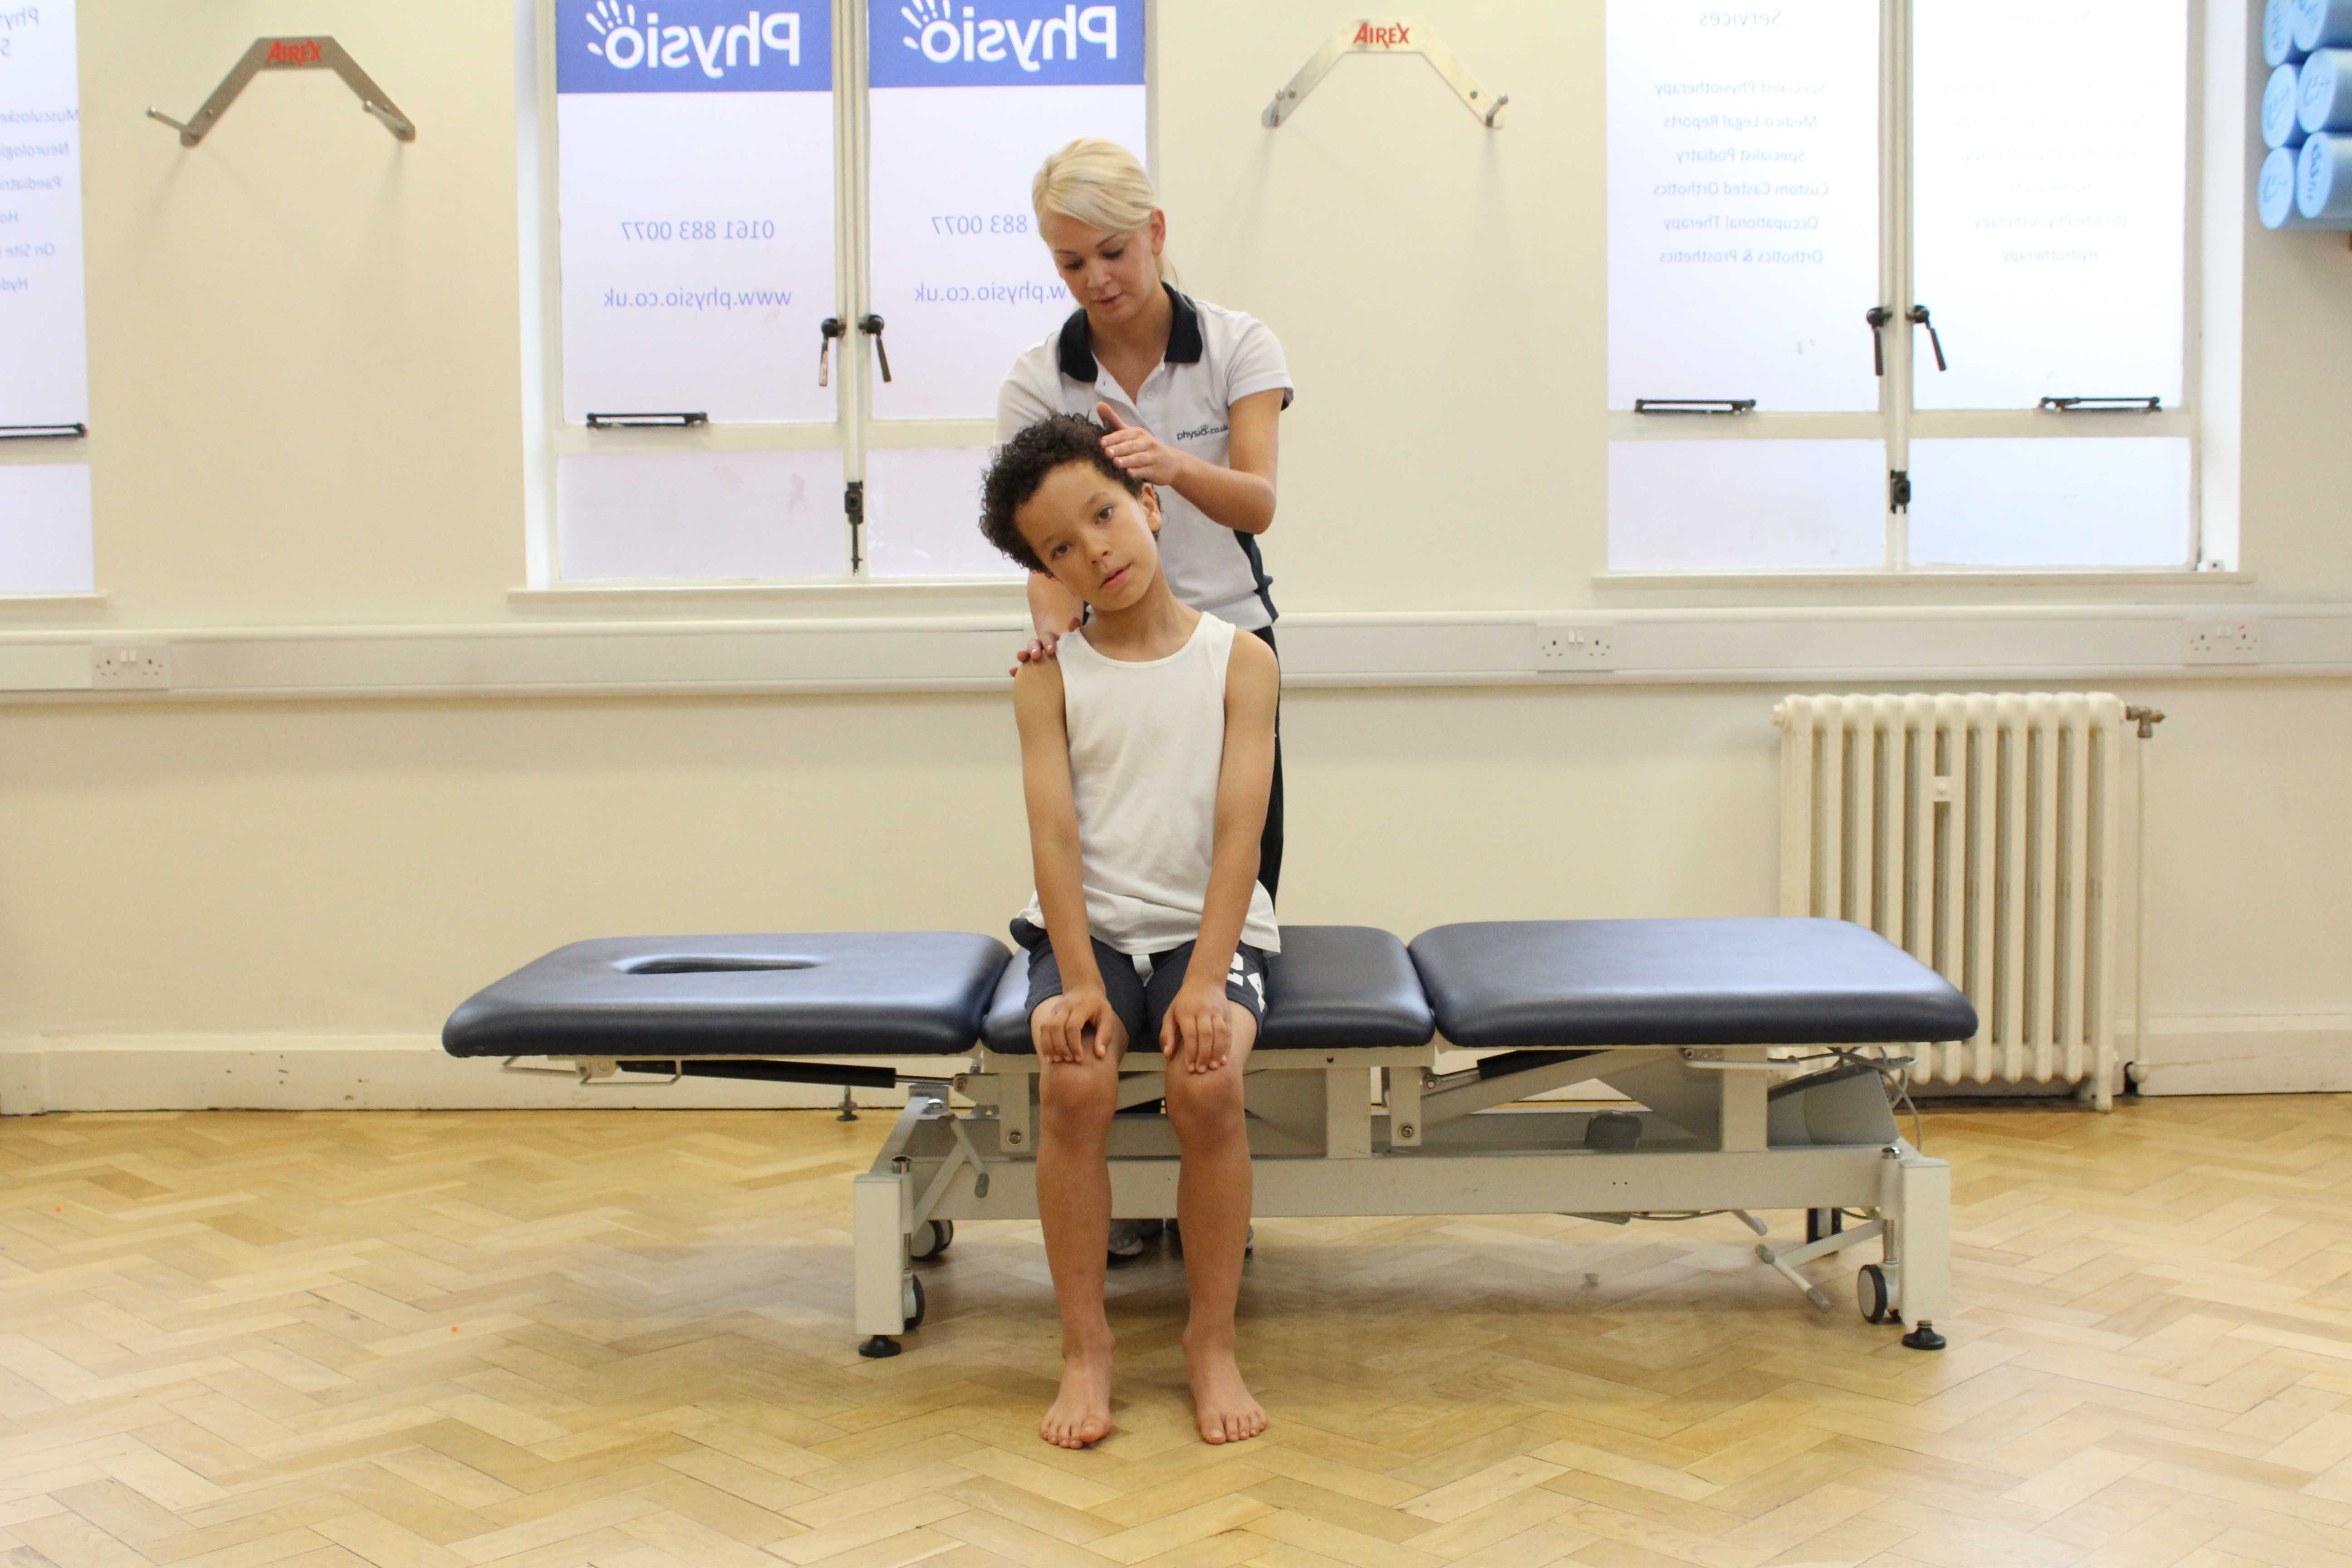 Even from a young age, it is important to have correct posture to prevent neck pain.